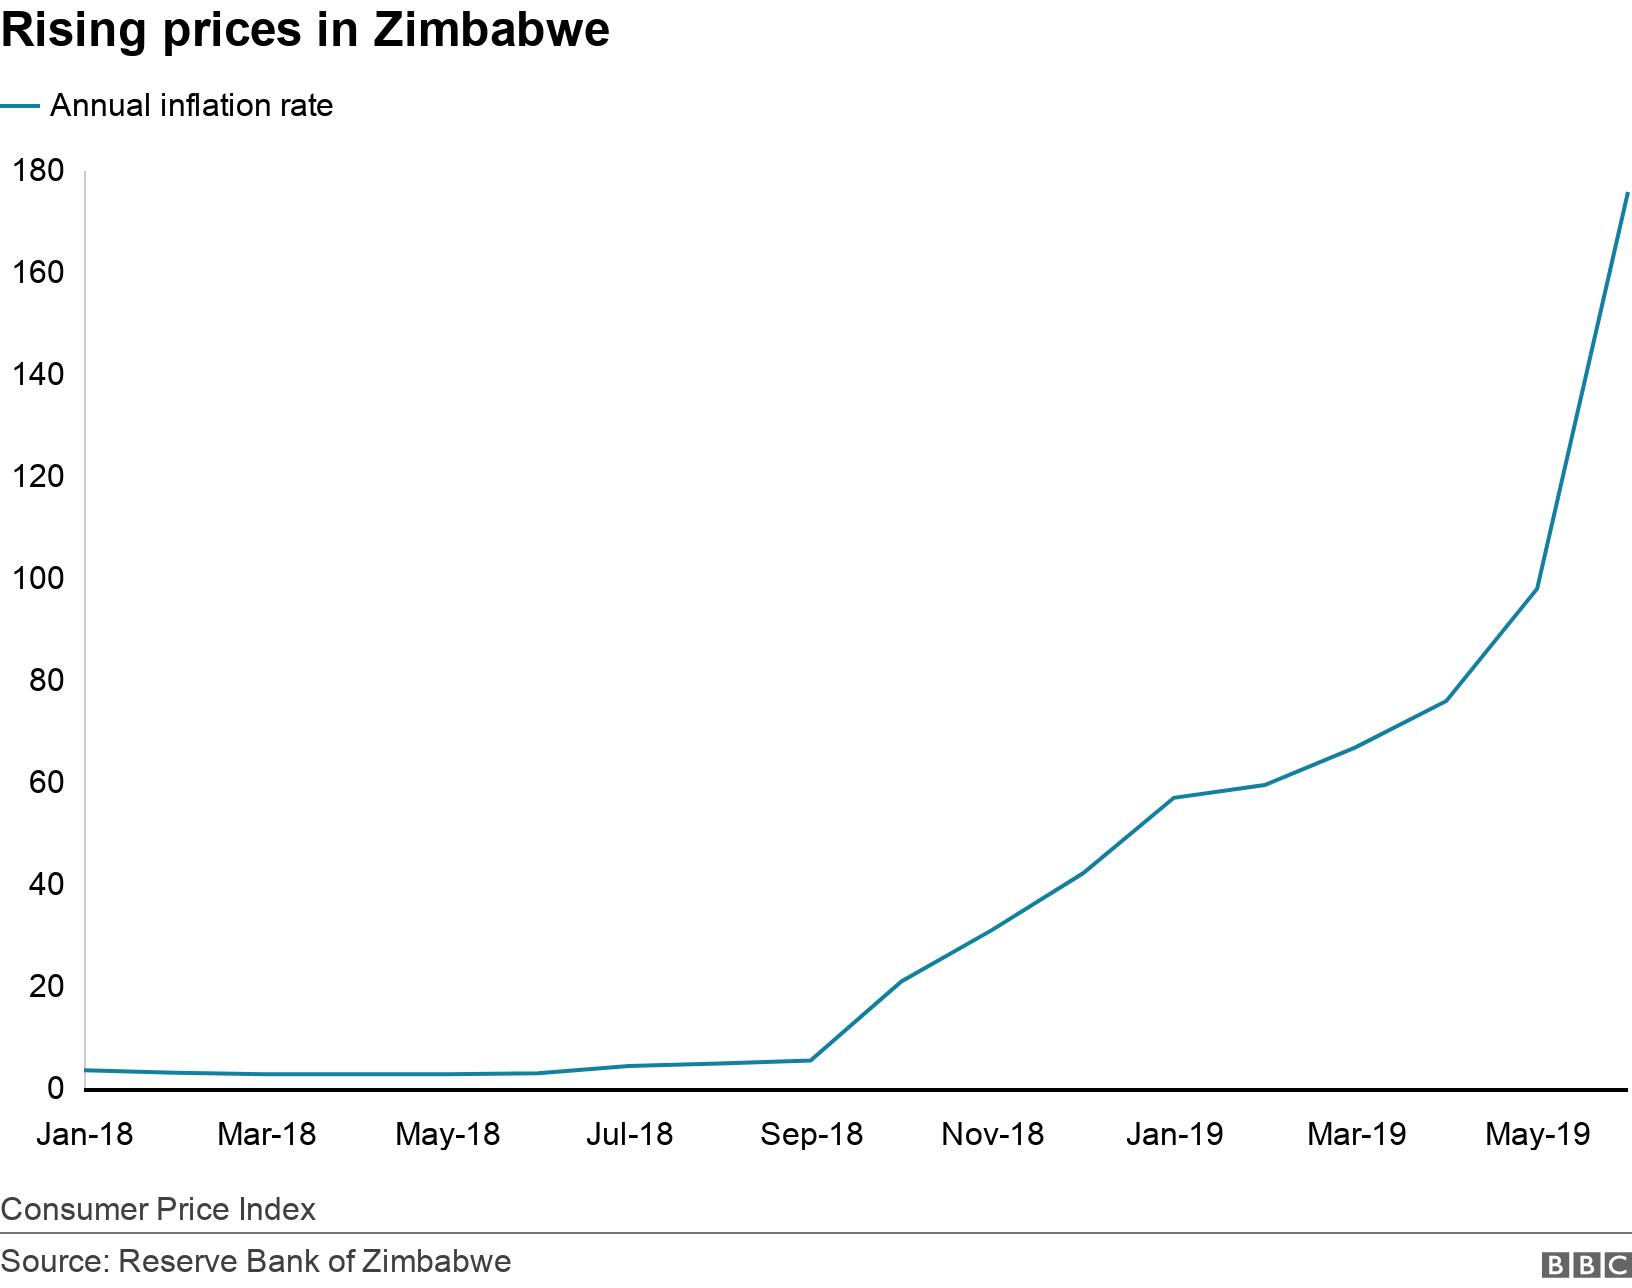 Rising prices in Zimbabwe. .  Consumer Price Index.